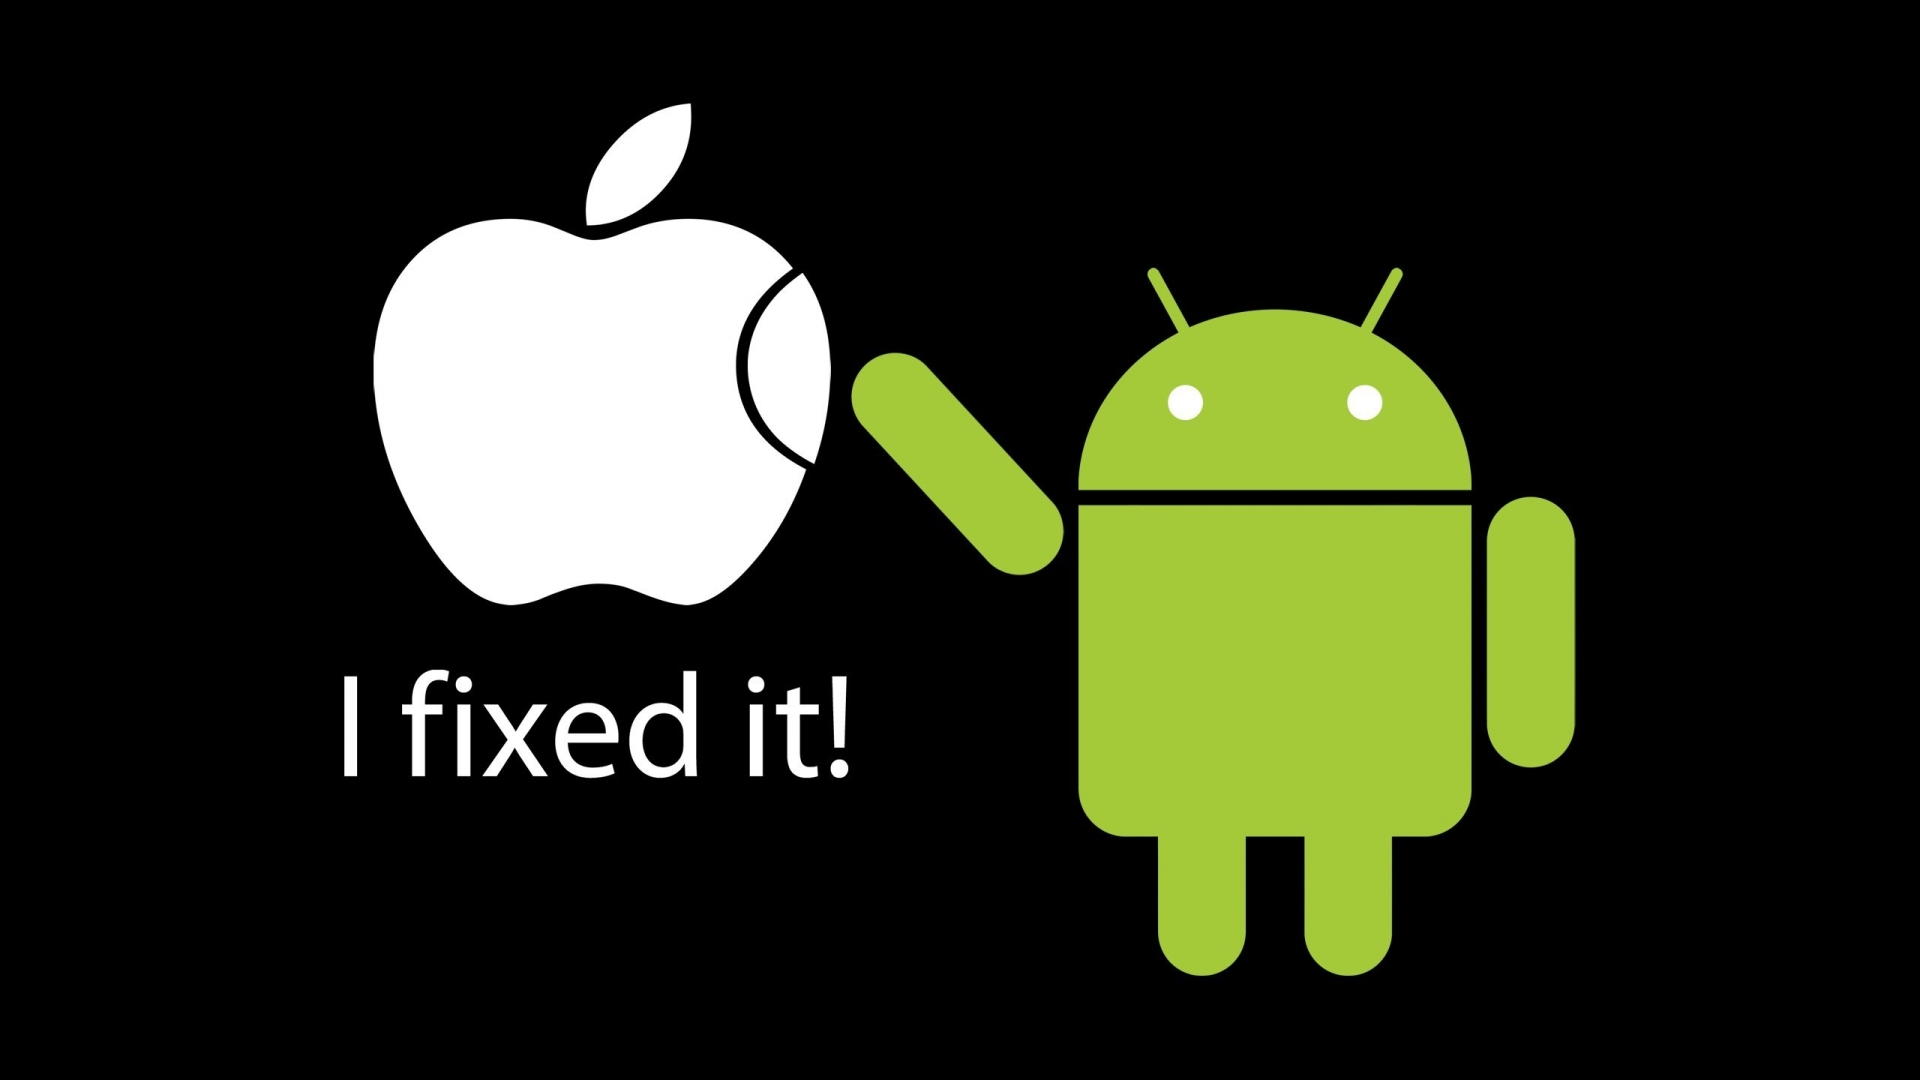 fixed apple by android high definition wallpapers hd wallpapers